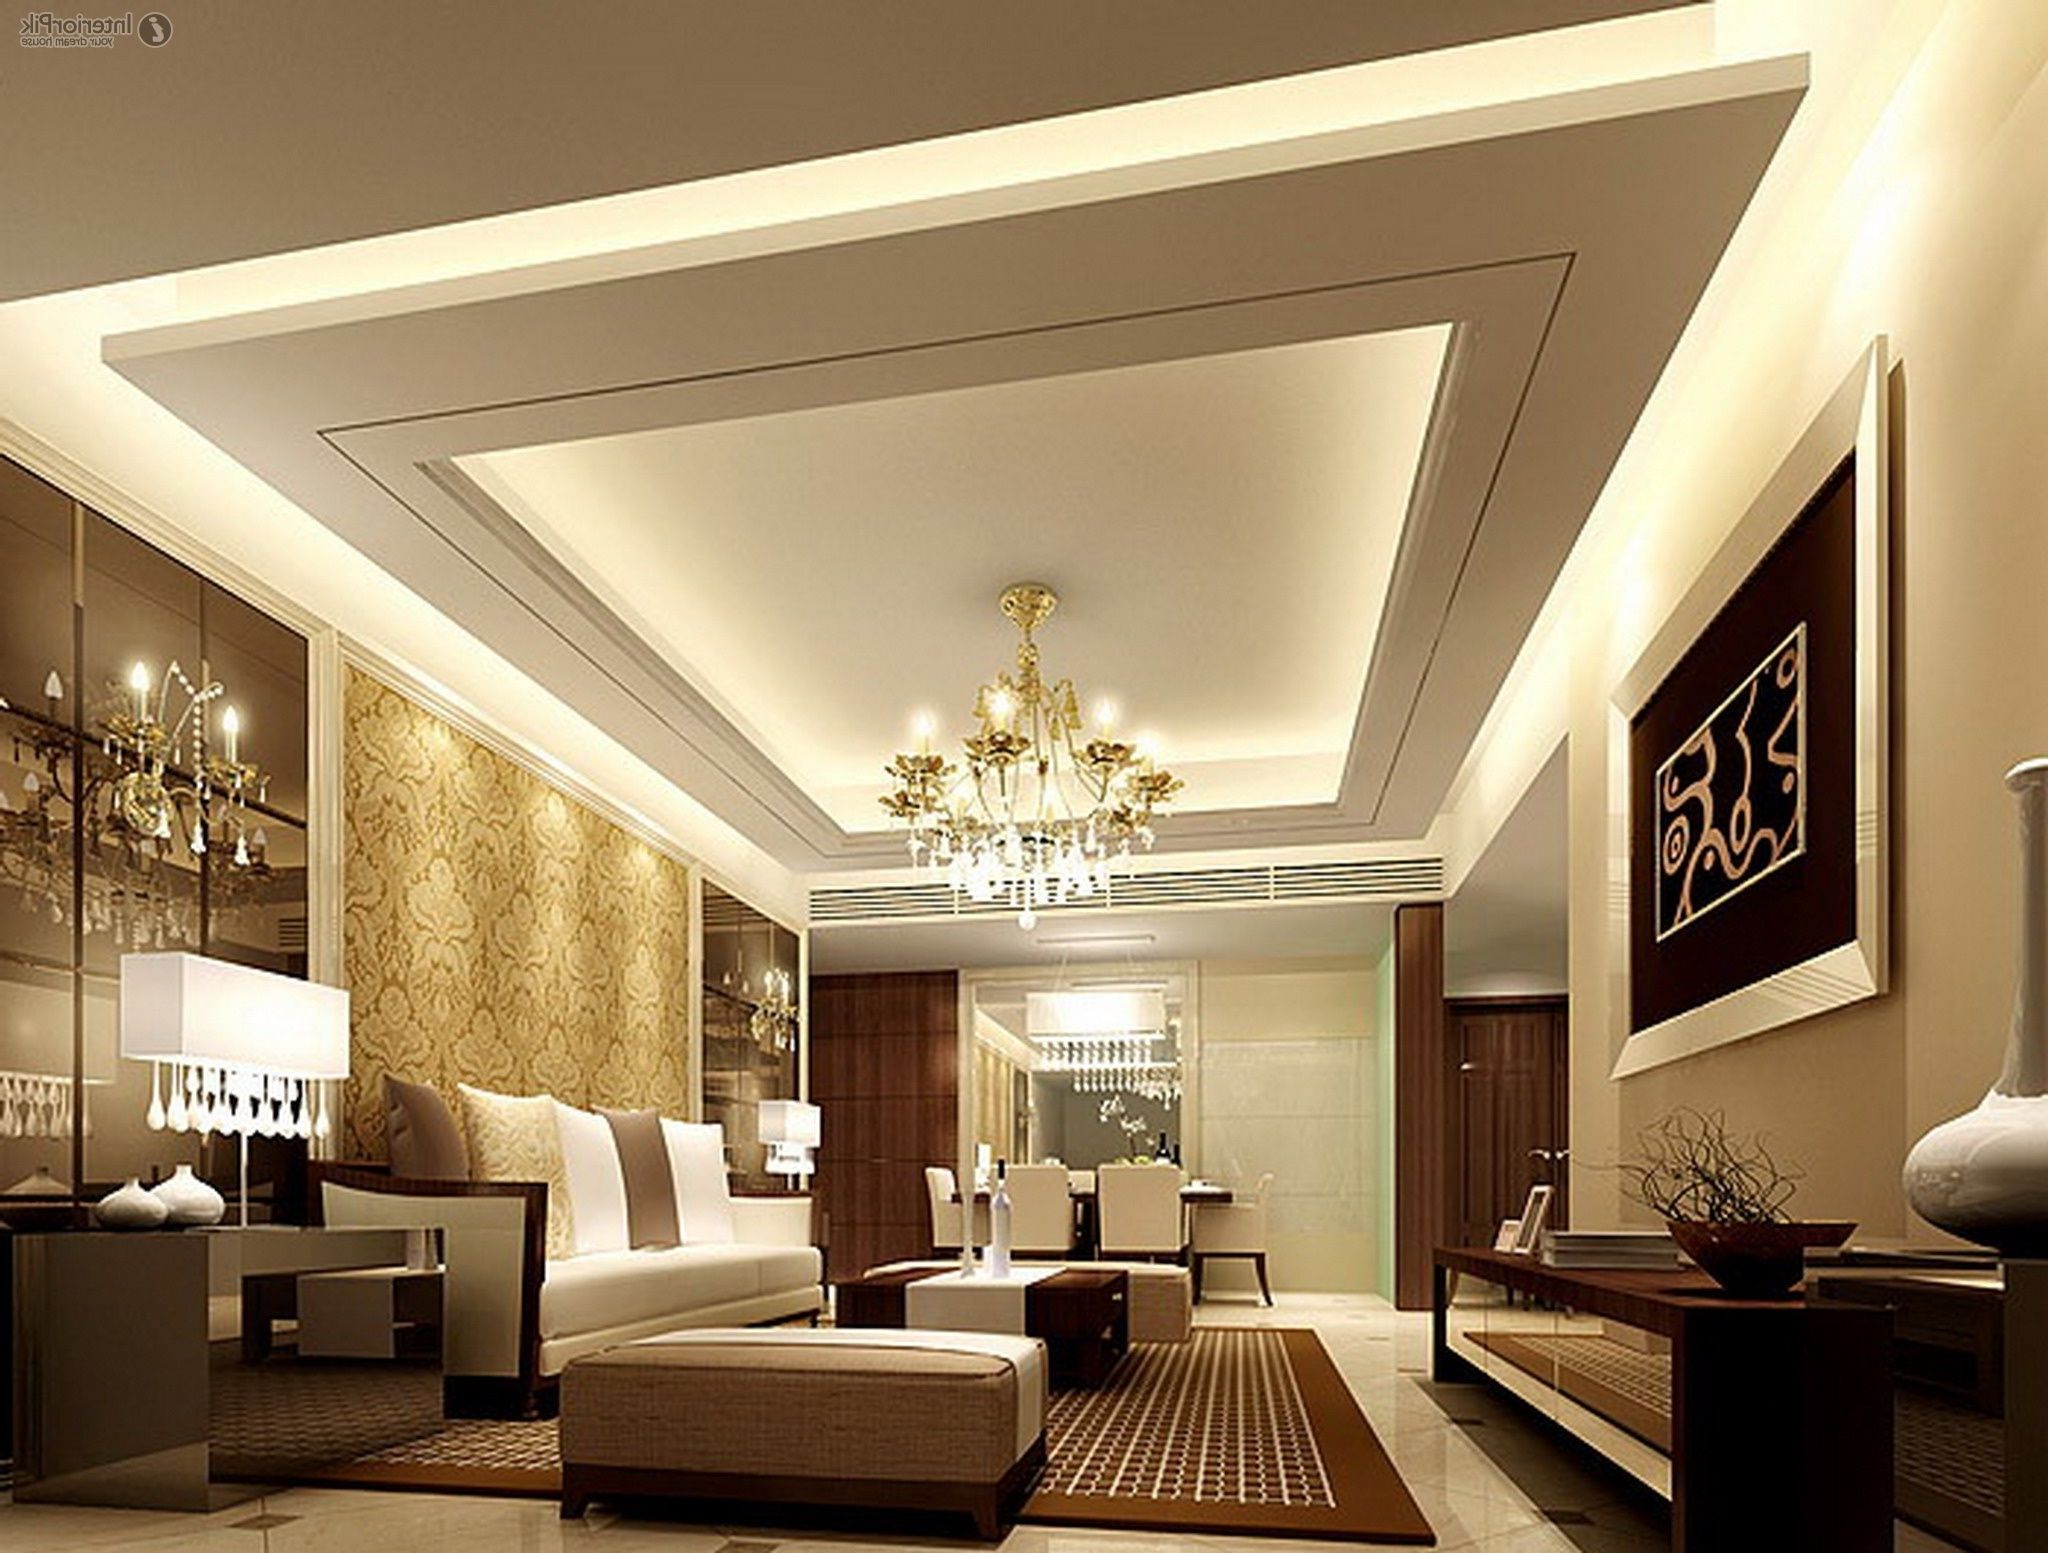 Living Room Ceiling Design 3040 Elegant Photos Gallery